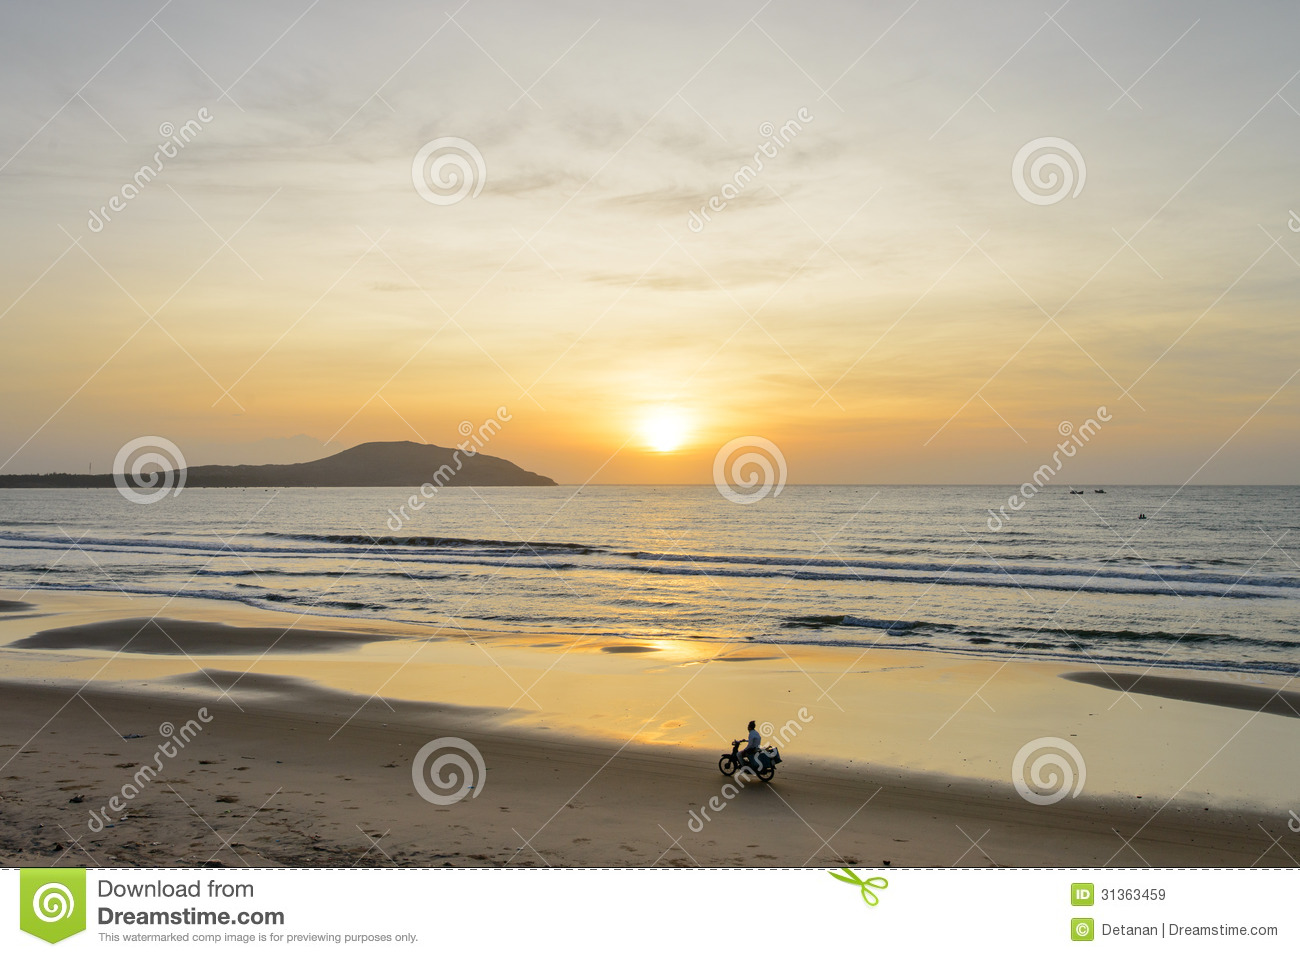 Ride motorcycle at sunrise on the beach